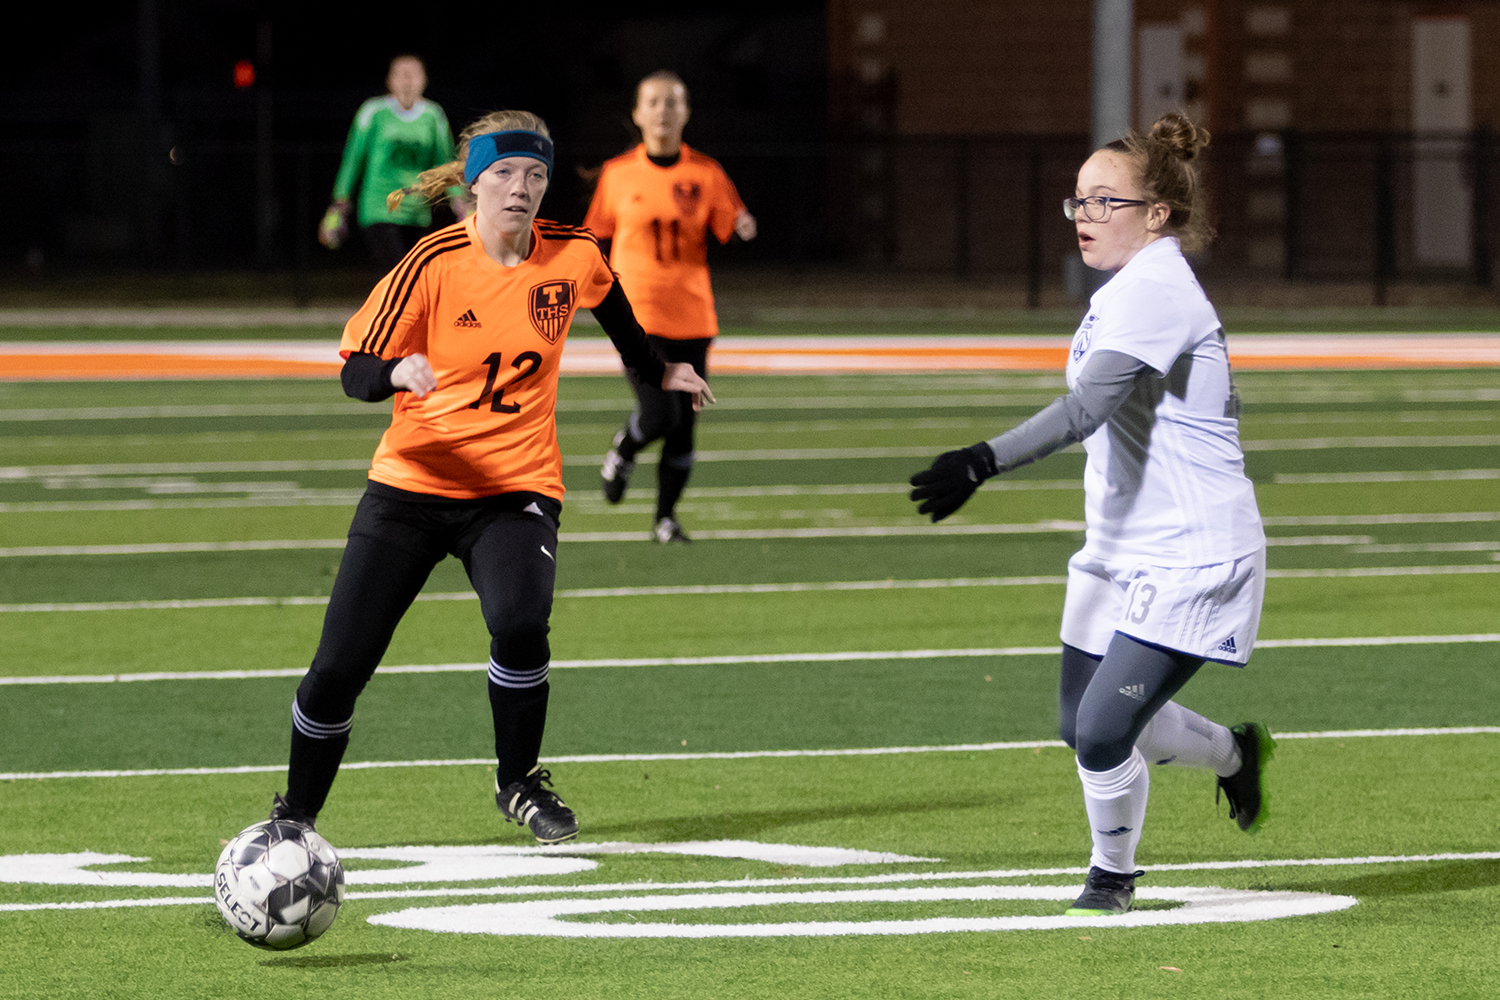 In a game against the Paris Lady Cats, sophomore Janie Rounds moves the ball down field. The Lady Tigers won 4-1.